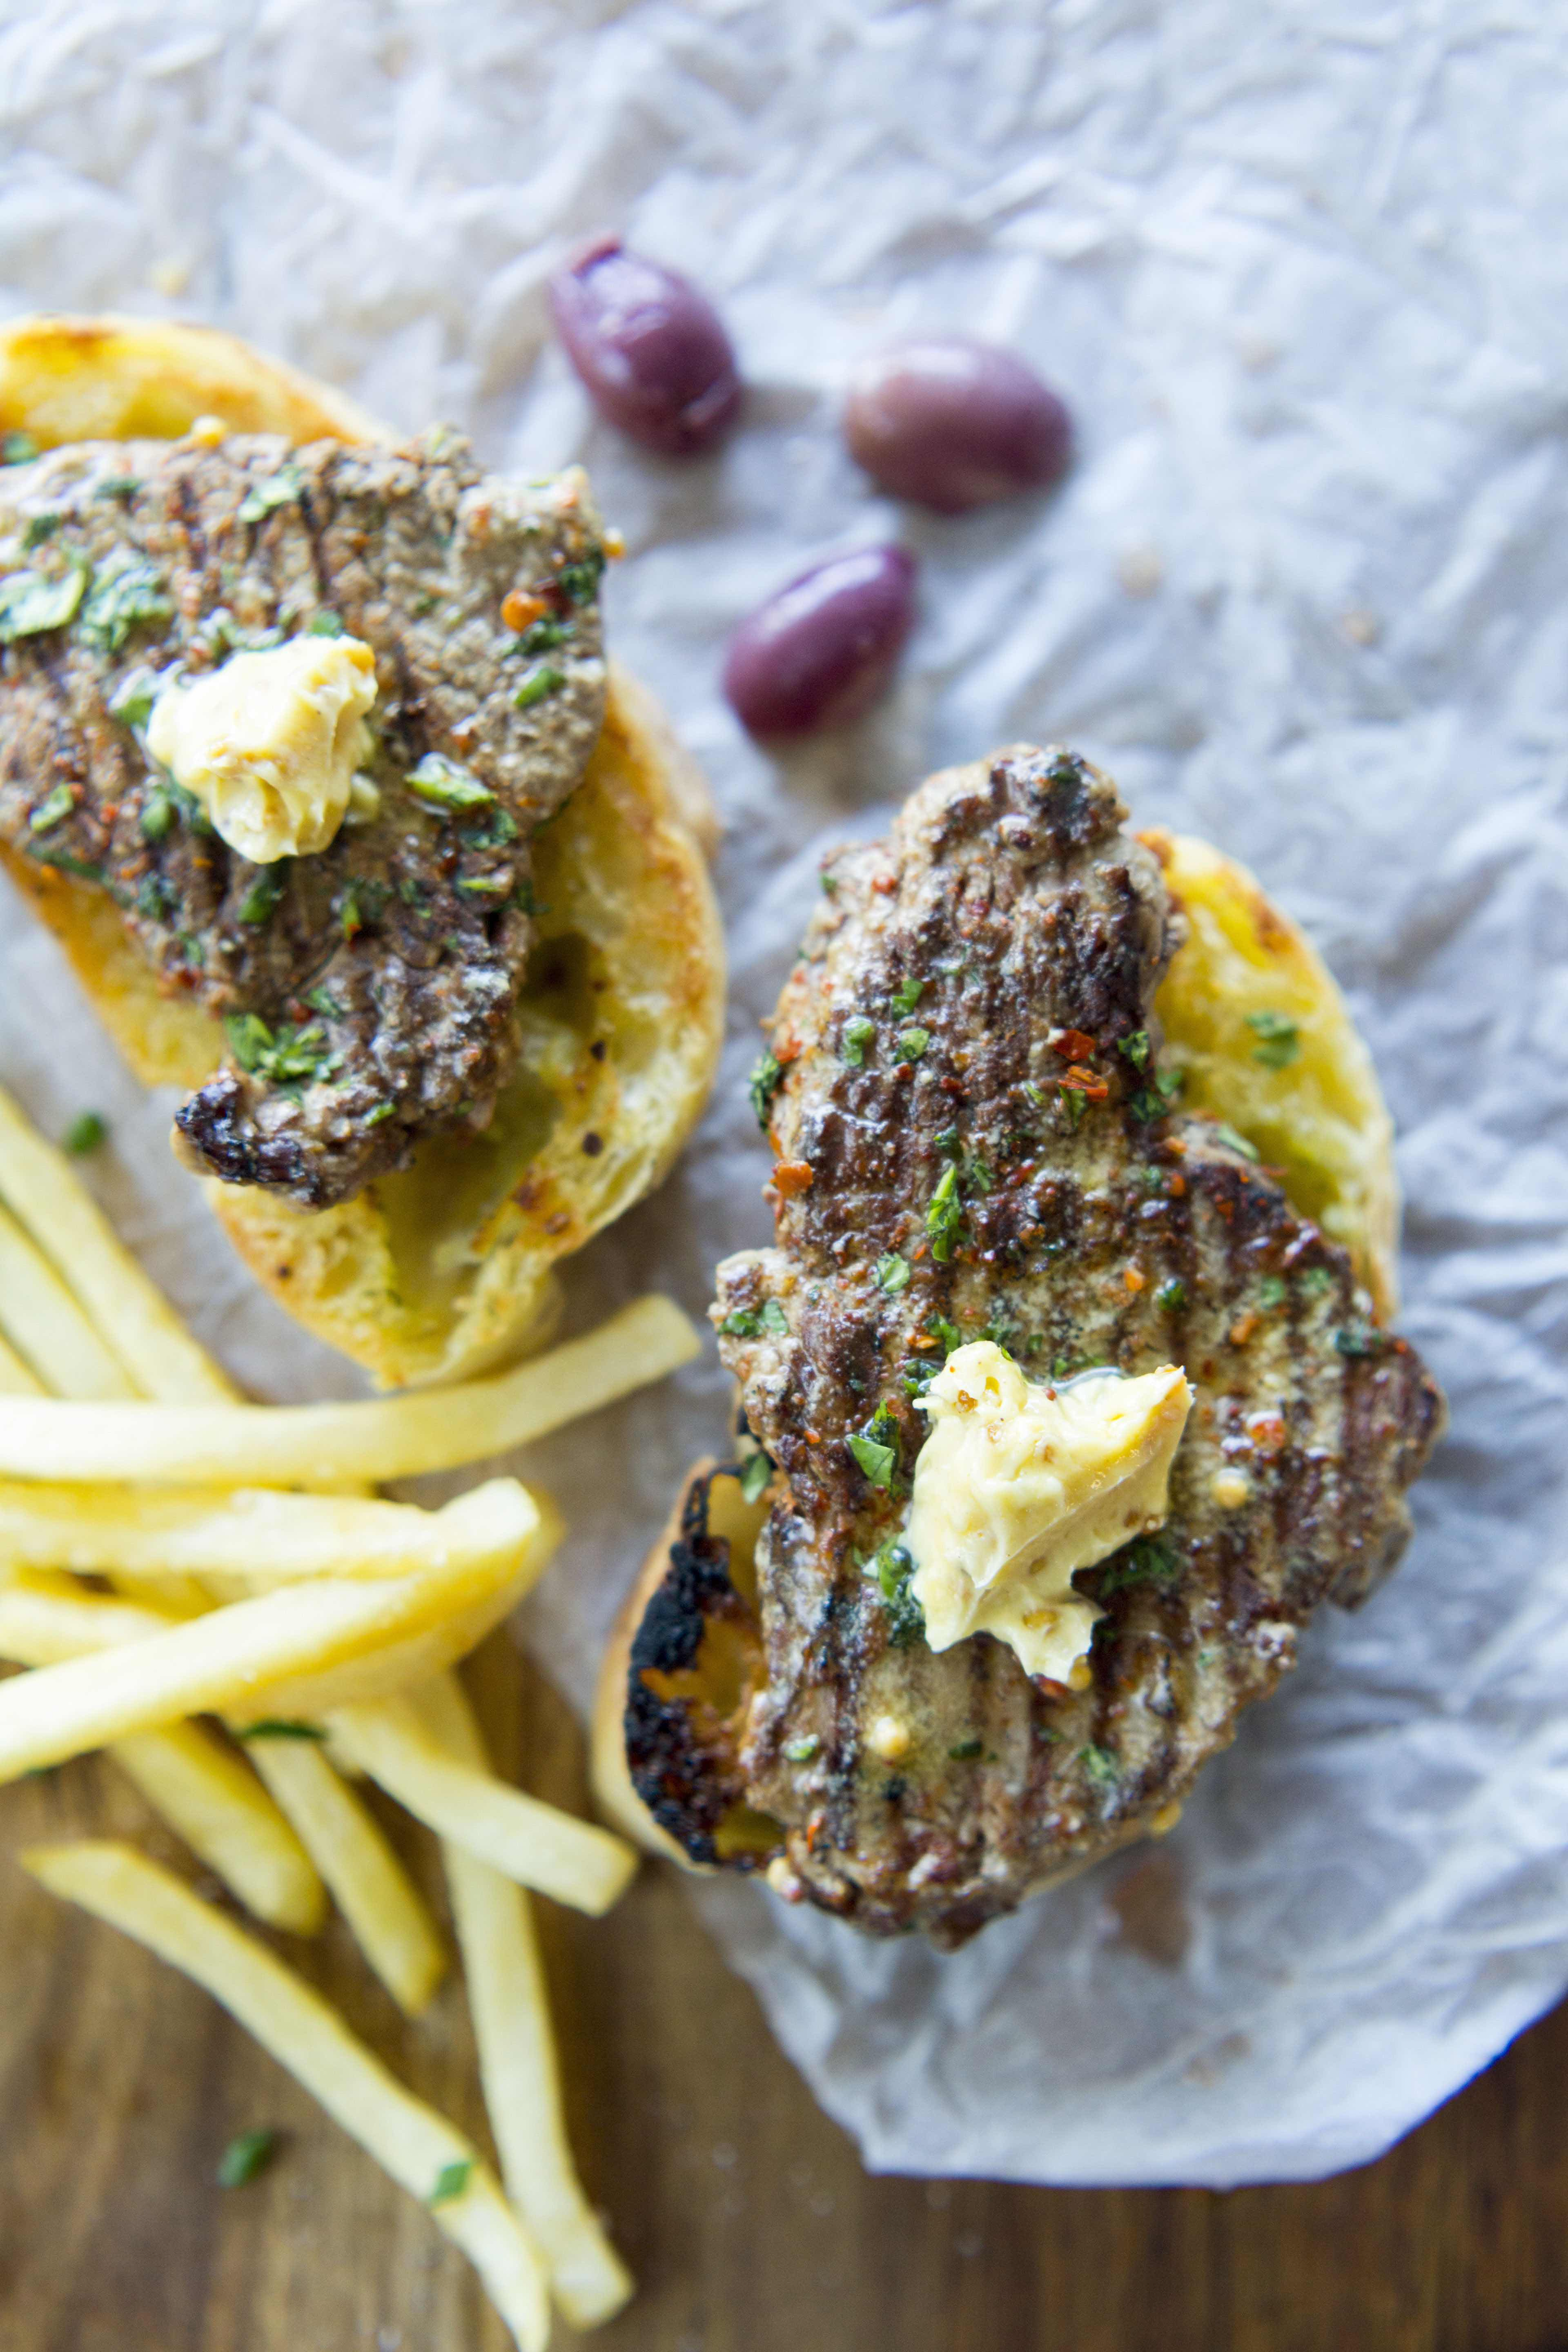 Chilli Chocolate Chefs' Steak with Mustard Butter & French Fries